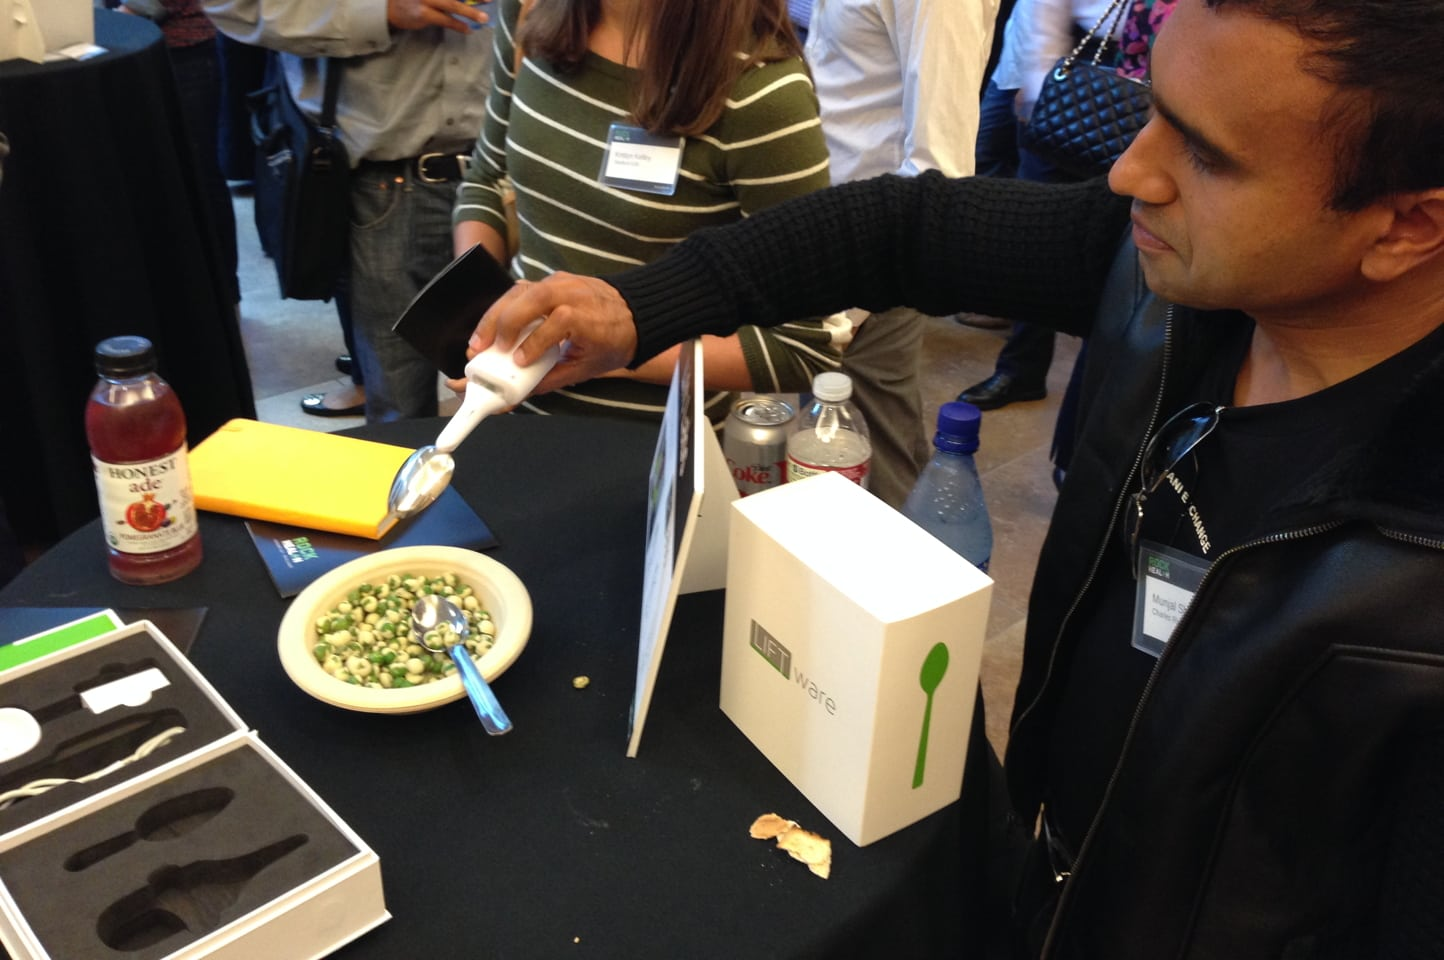 """The Lift Labs """"Liftware"""" device cancels out 70 percent of the movement from essential tremor, according to CEO Anupam Pathak. The company is partnering with the International Essential Tremor Foundation to make the $295 device available at no cost to patients who can't afford to pay for one out of pocket."""